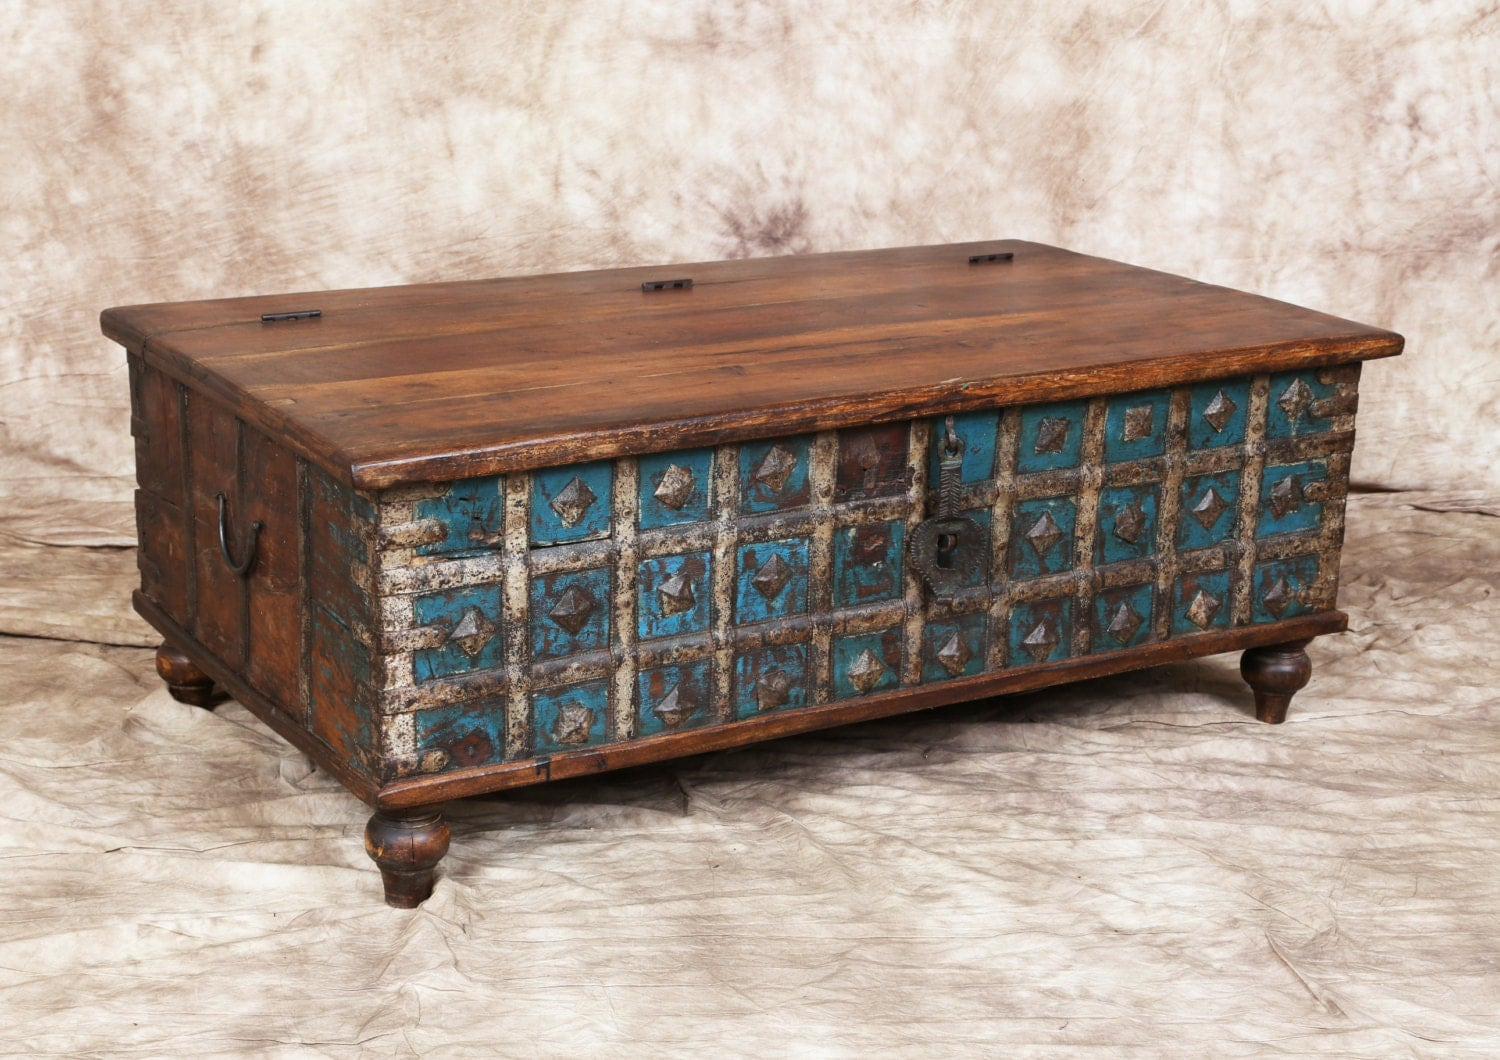 Antique Blue Cream Indian Trunk Coffee Table Metal Latch Storage Metal Accent Bands Haute Juice